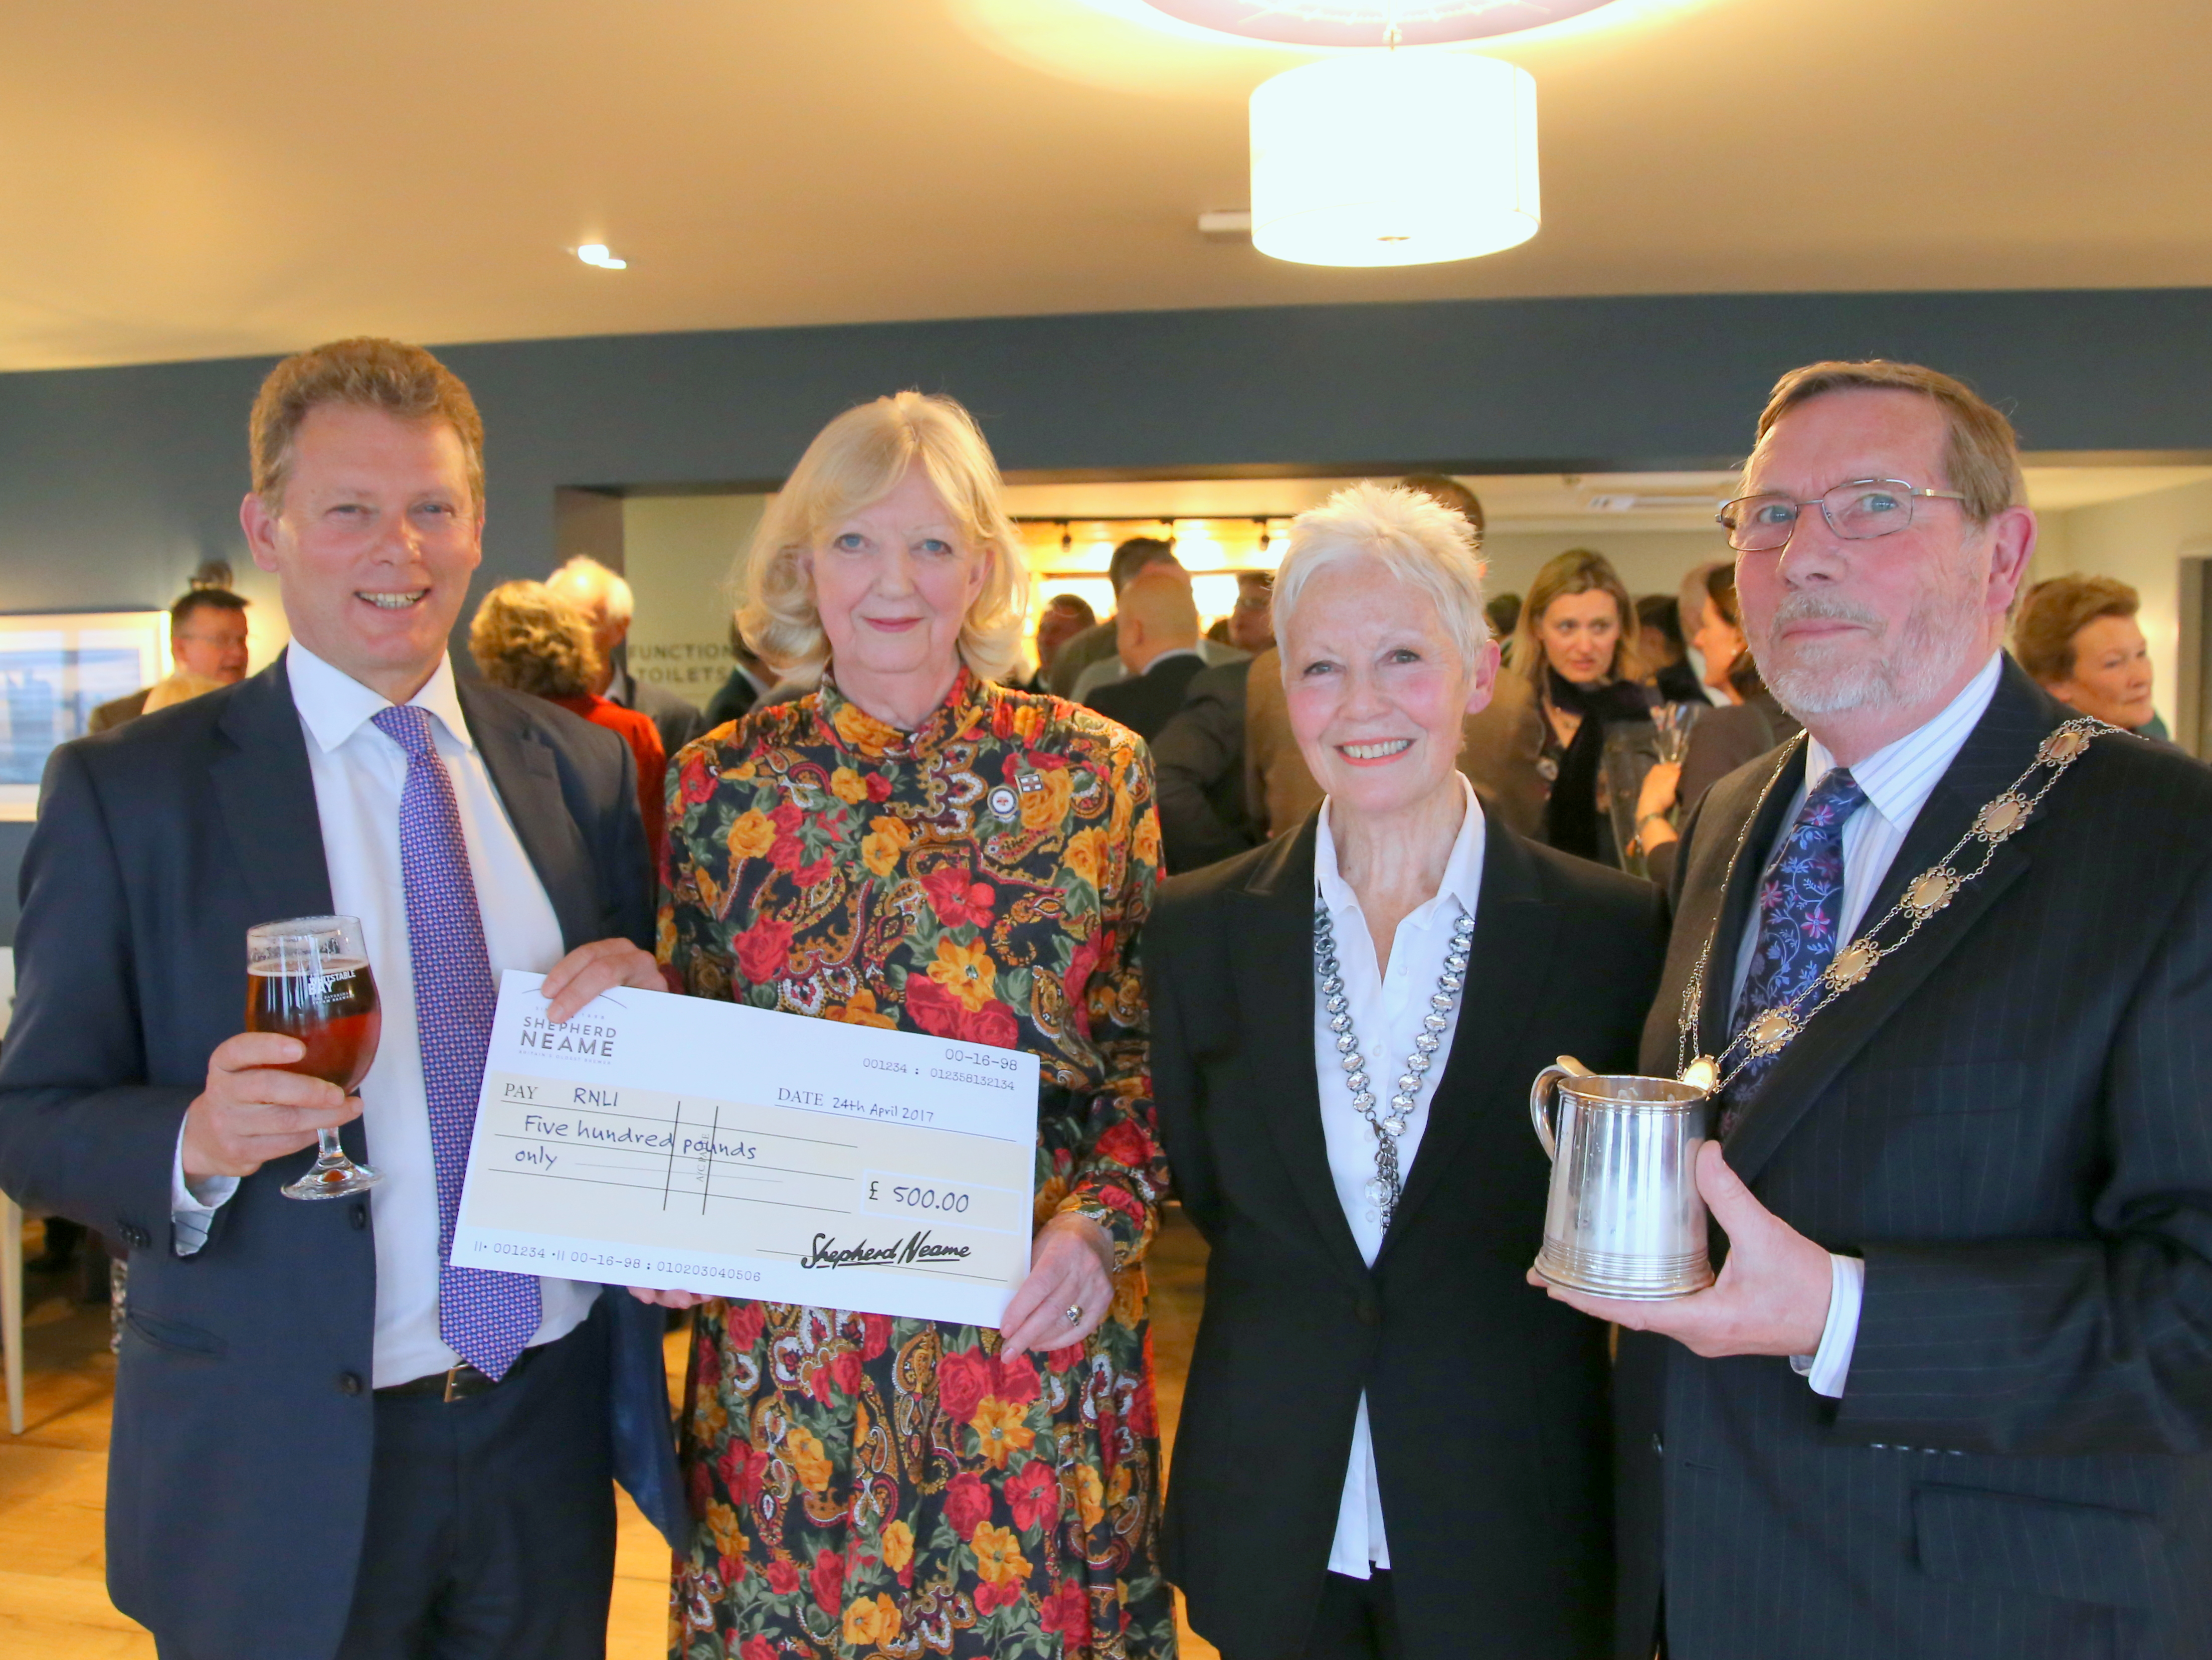 Jonathan Neame presents a cheque for the RNLI at the reopening of the Minnis Bay, with Fiz Gulliver-Crane of Birchington RNLI, Barbara Sturgeon and Cllr Neville Hudson